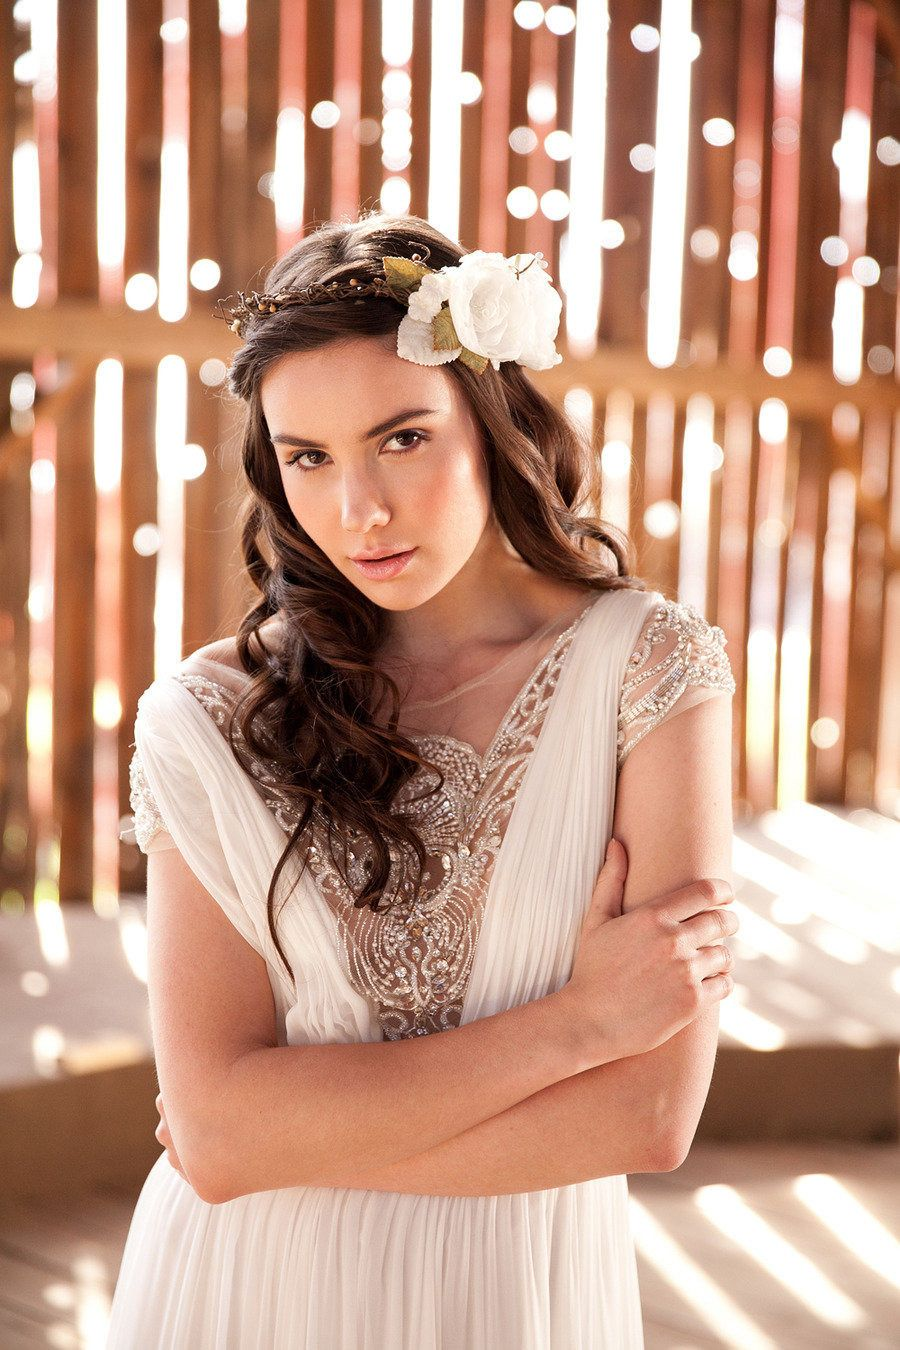 Boho chic inspired photo shoot from magnolia studios willow rose